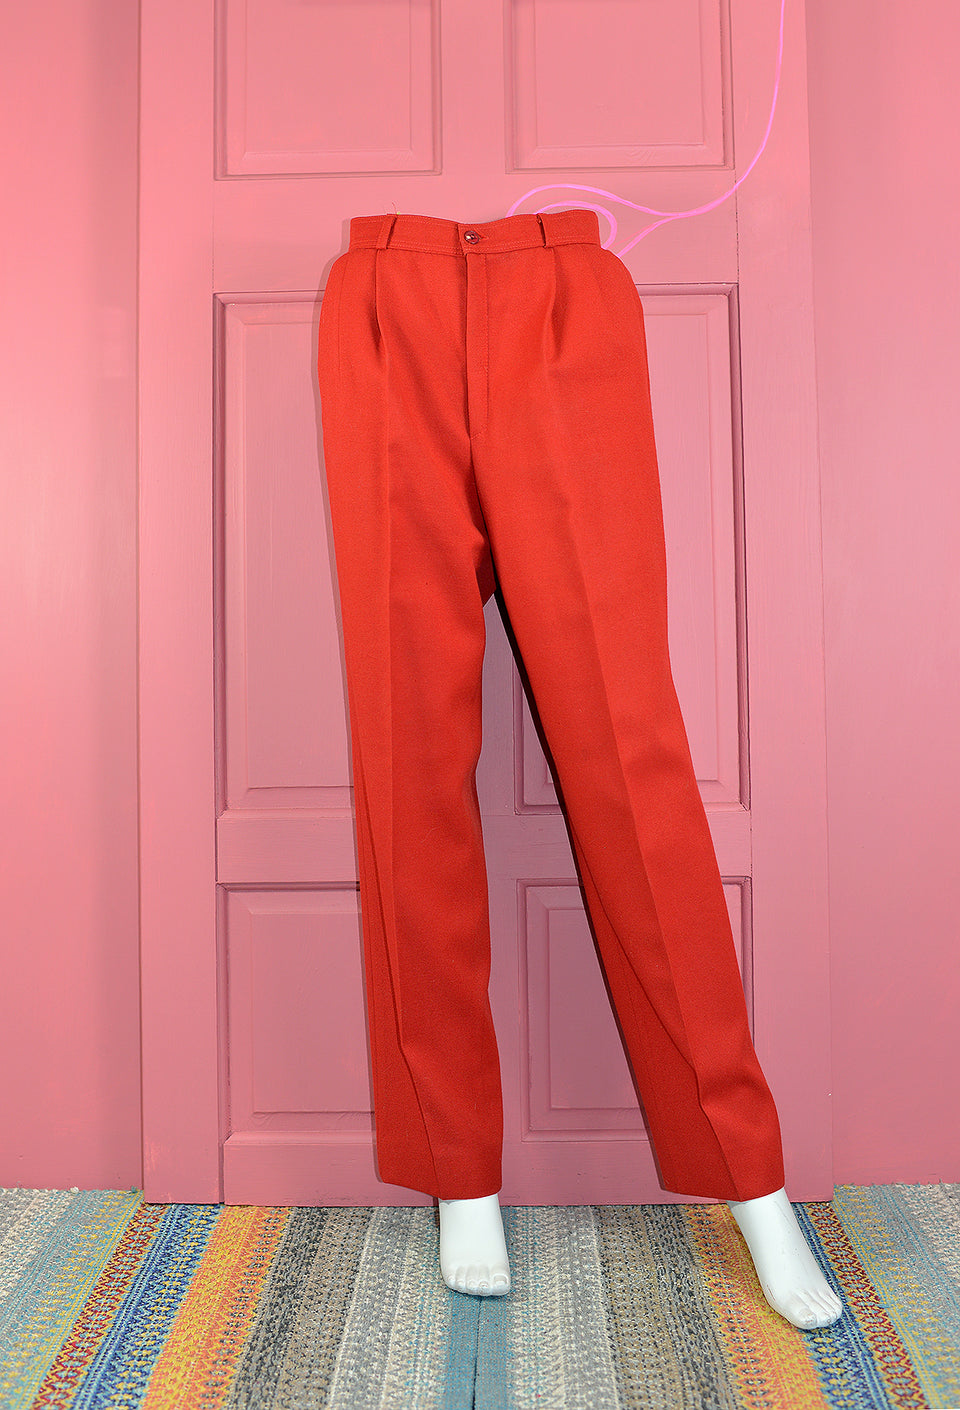 CANDA Women's Red Wool Blend Trousers, Size S. Vintage.